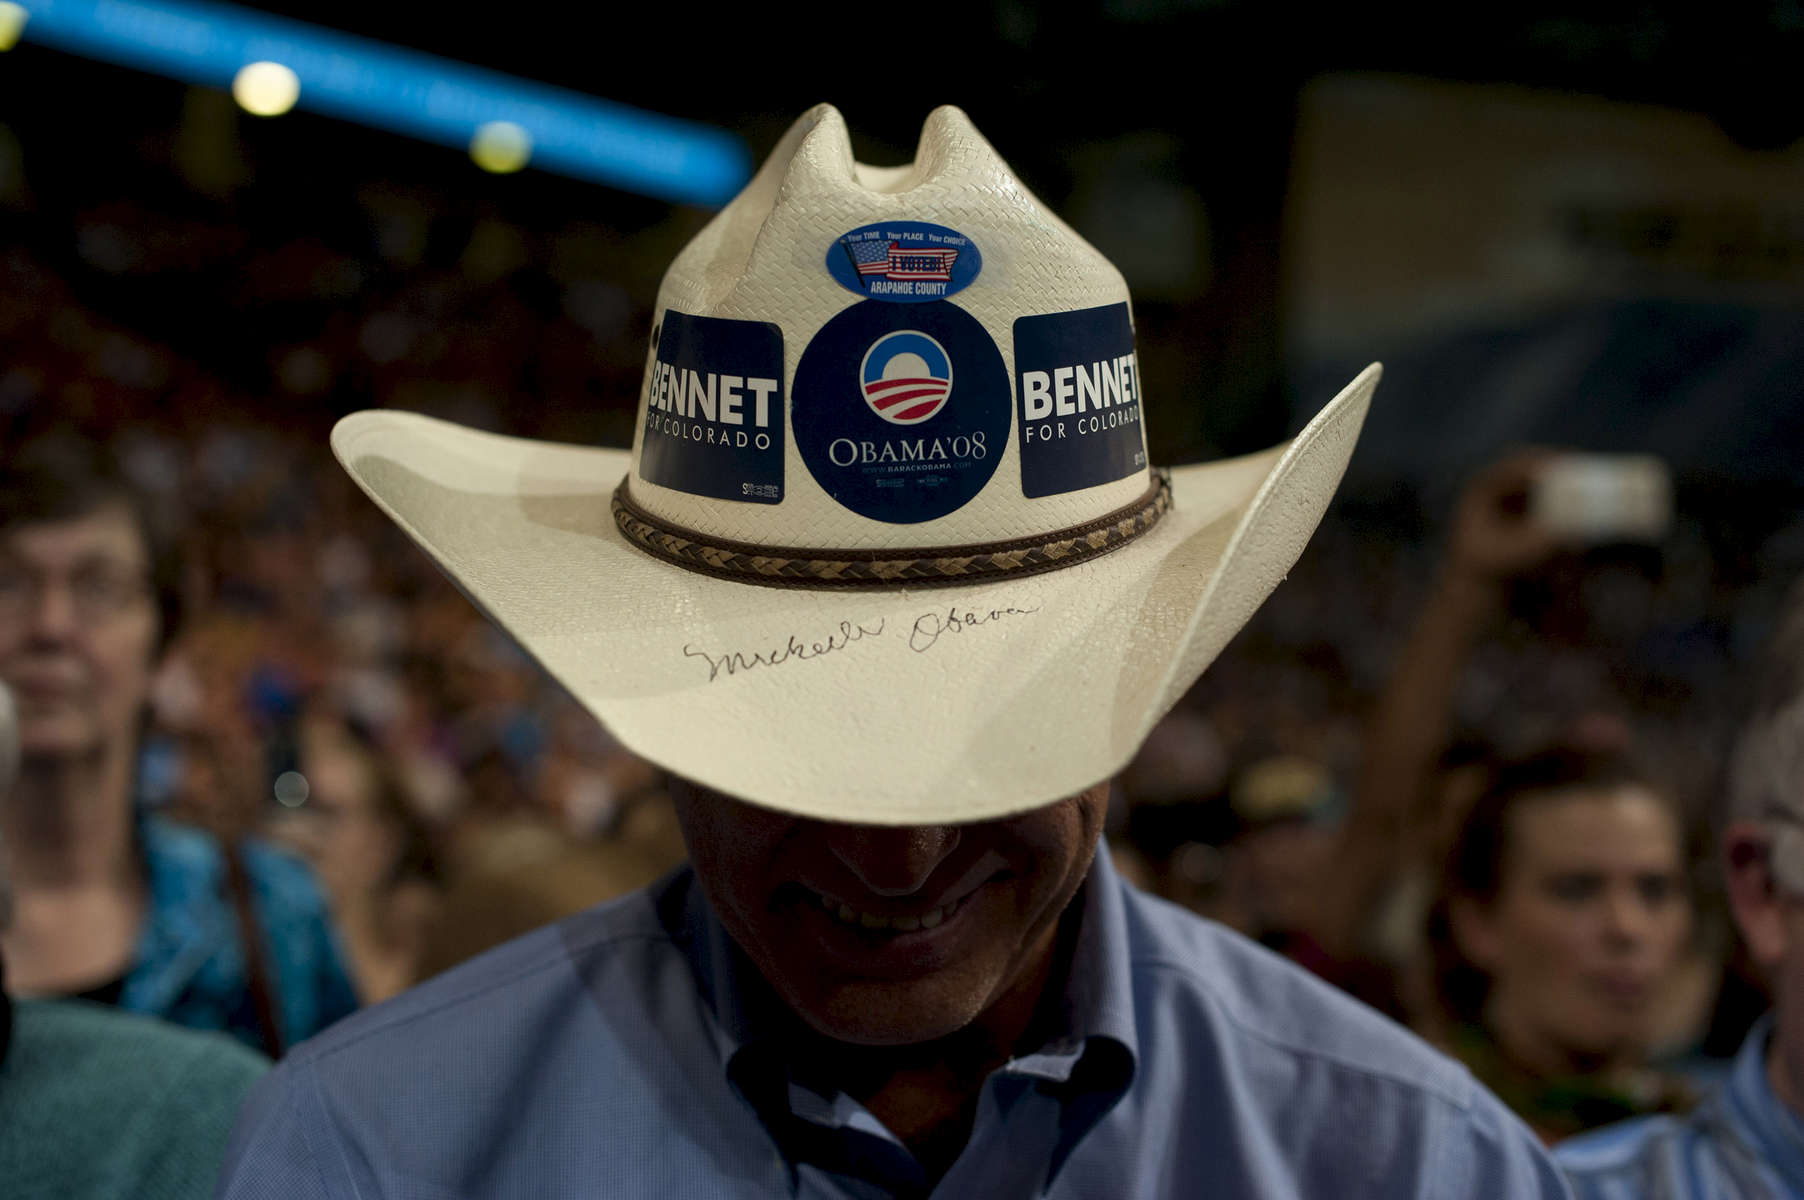 November 1, 2012 - Boulder, CO:  A supporter wears a cowboy hat signed by Michelle Obama at a rally for President Barack Obama in Boulder, CO a few days before the 2012 election. (Scout Tufankjian for Obama for America/Polaris)